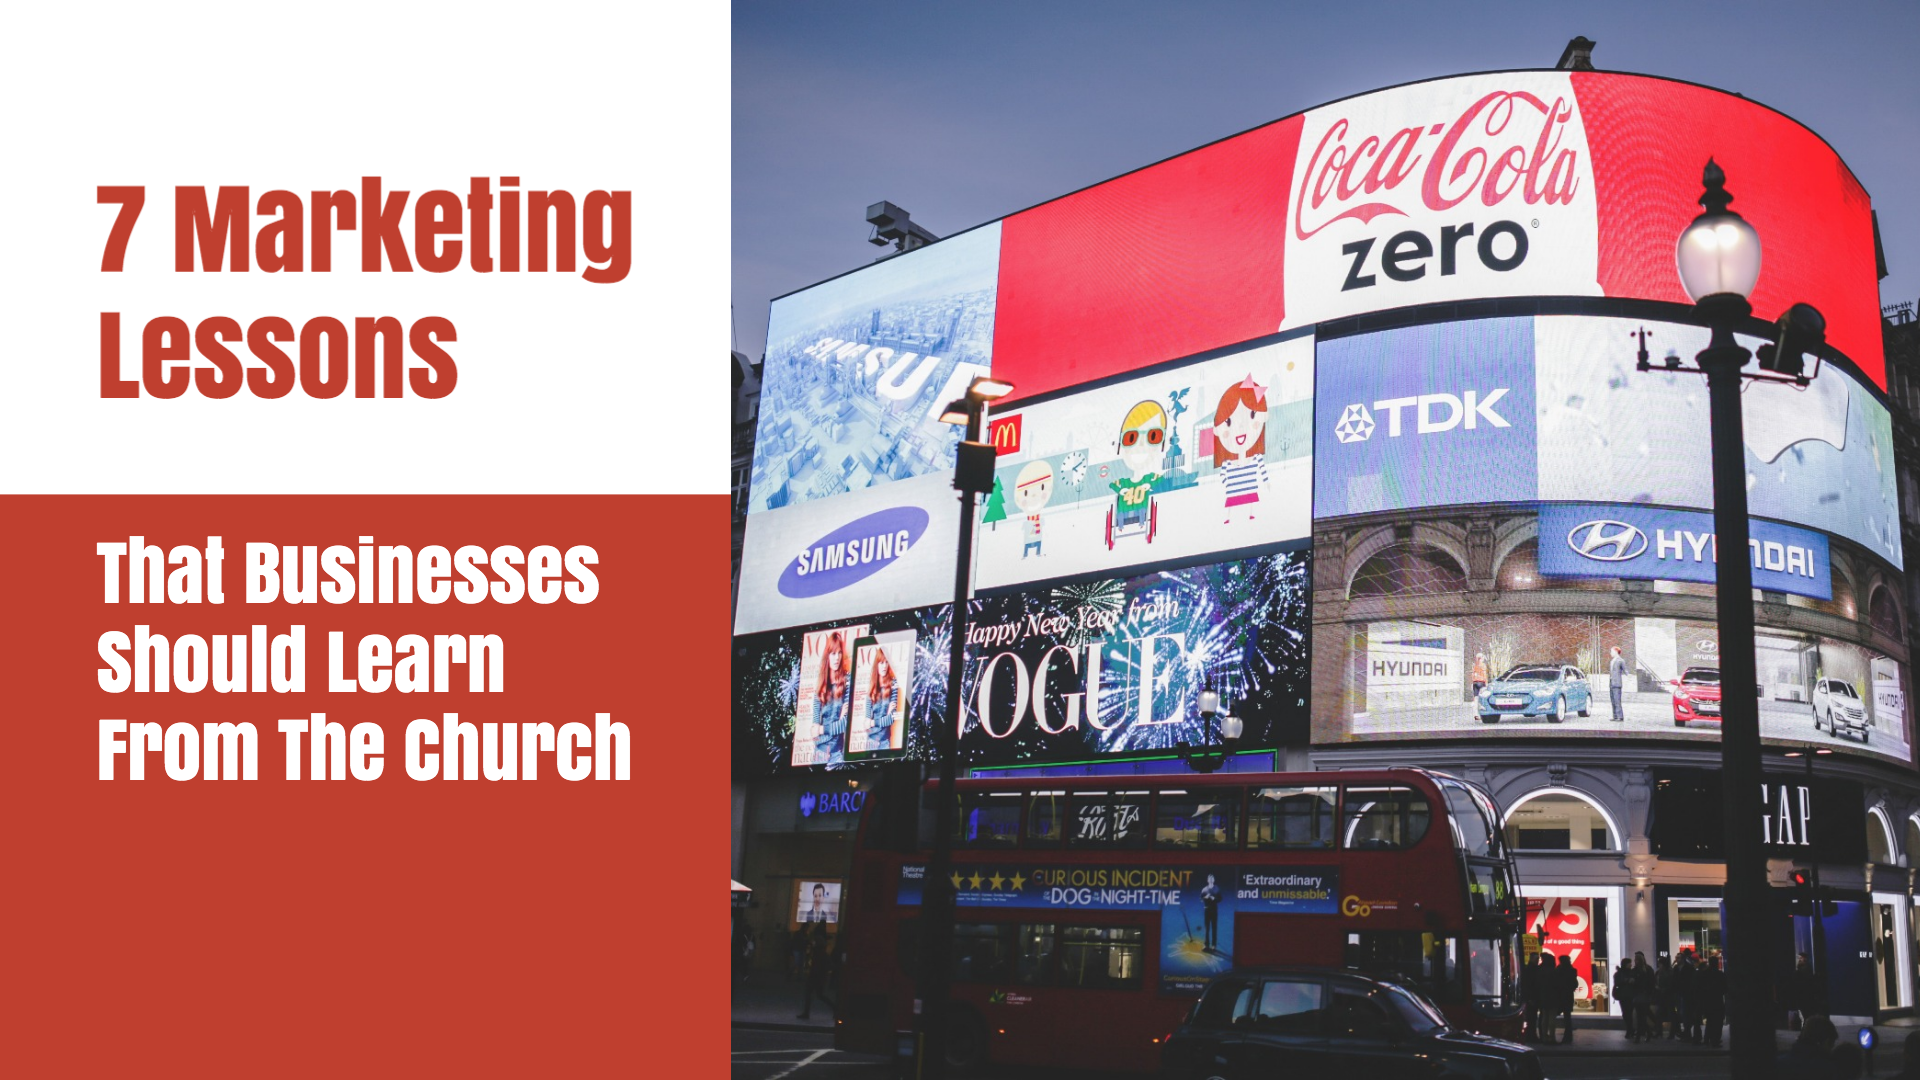 Image for 7 Marketing Lessons That Businesses Should Learn From The Church